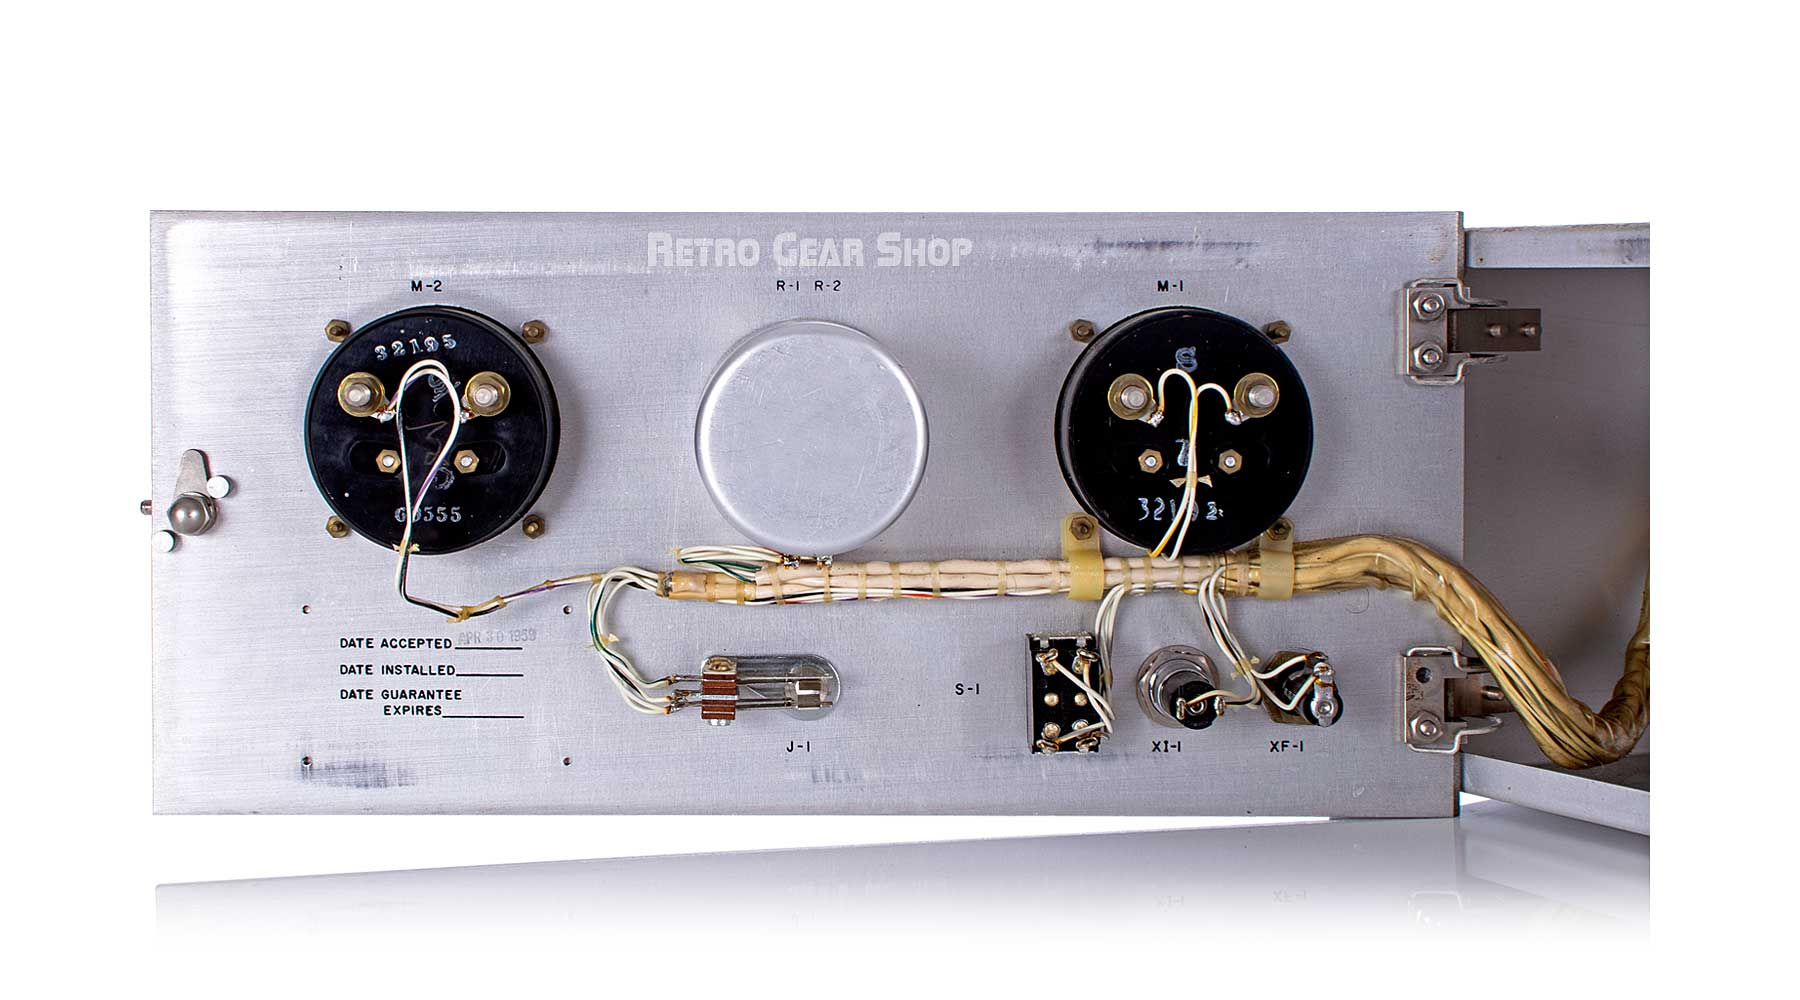 U.S. Department of Commerce CAA Tritronics Laboratory Internals Faceplate